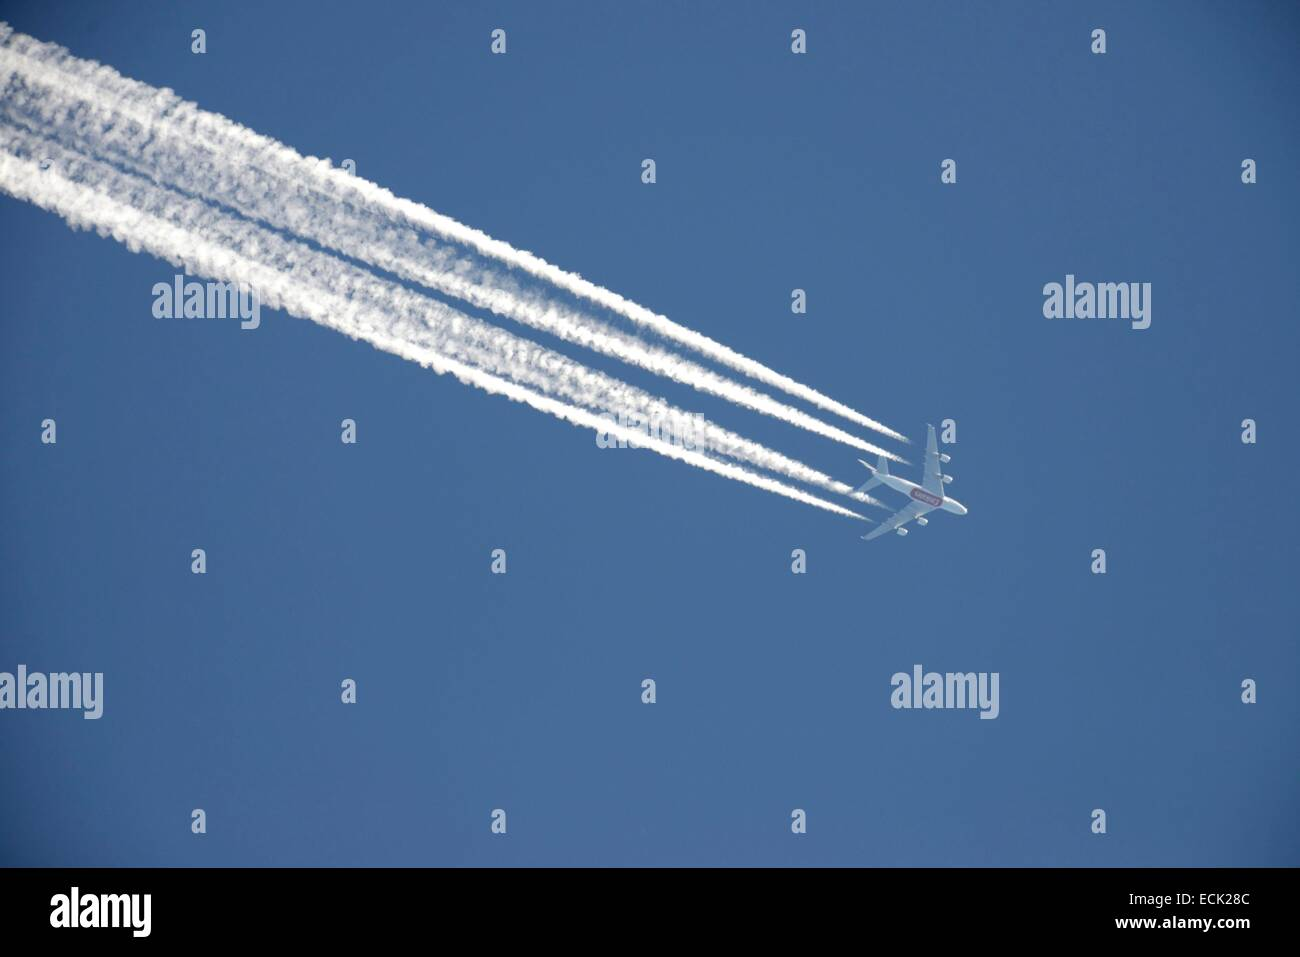 France, Doubs, long haul aircraft with four engines in the open blue sky leaving a white trail behind him important - Stock Image